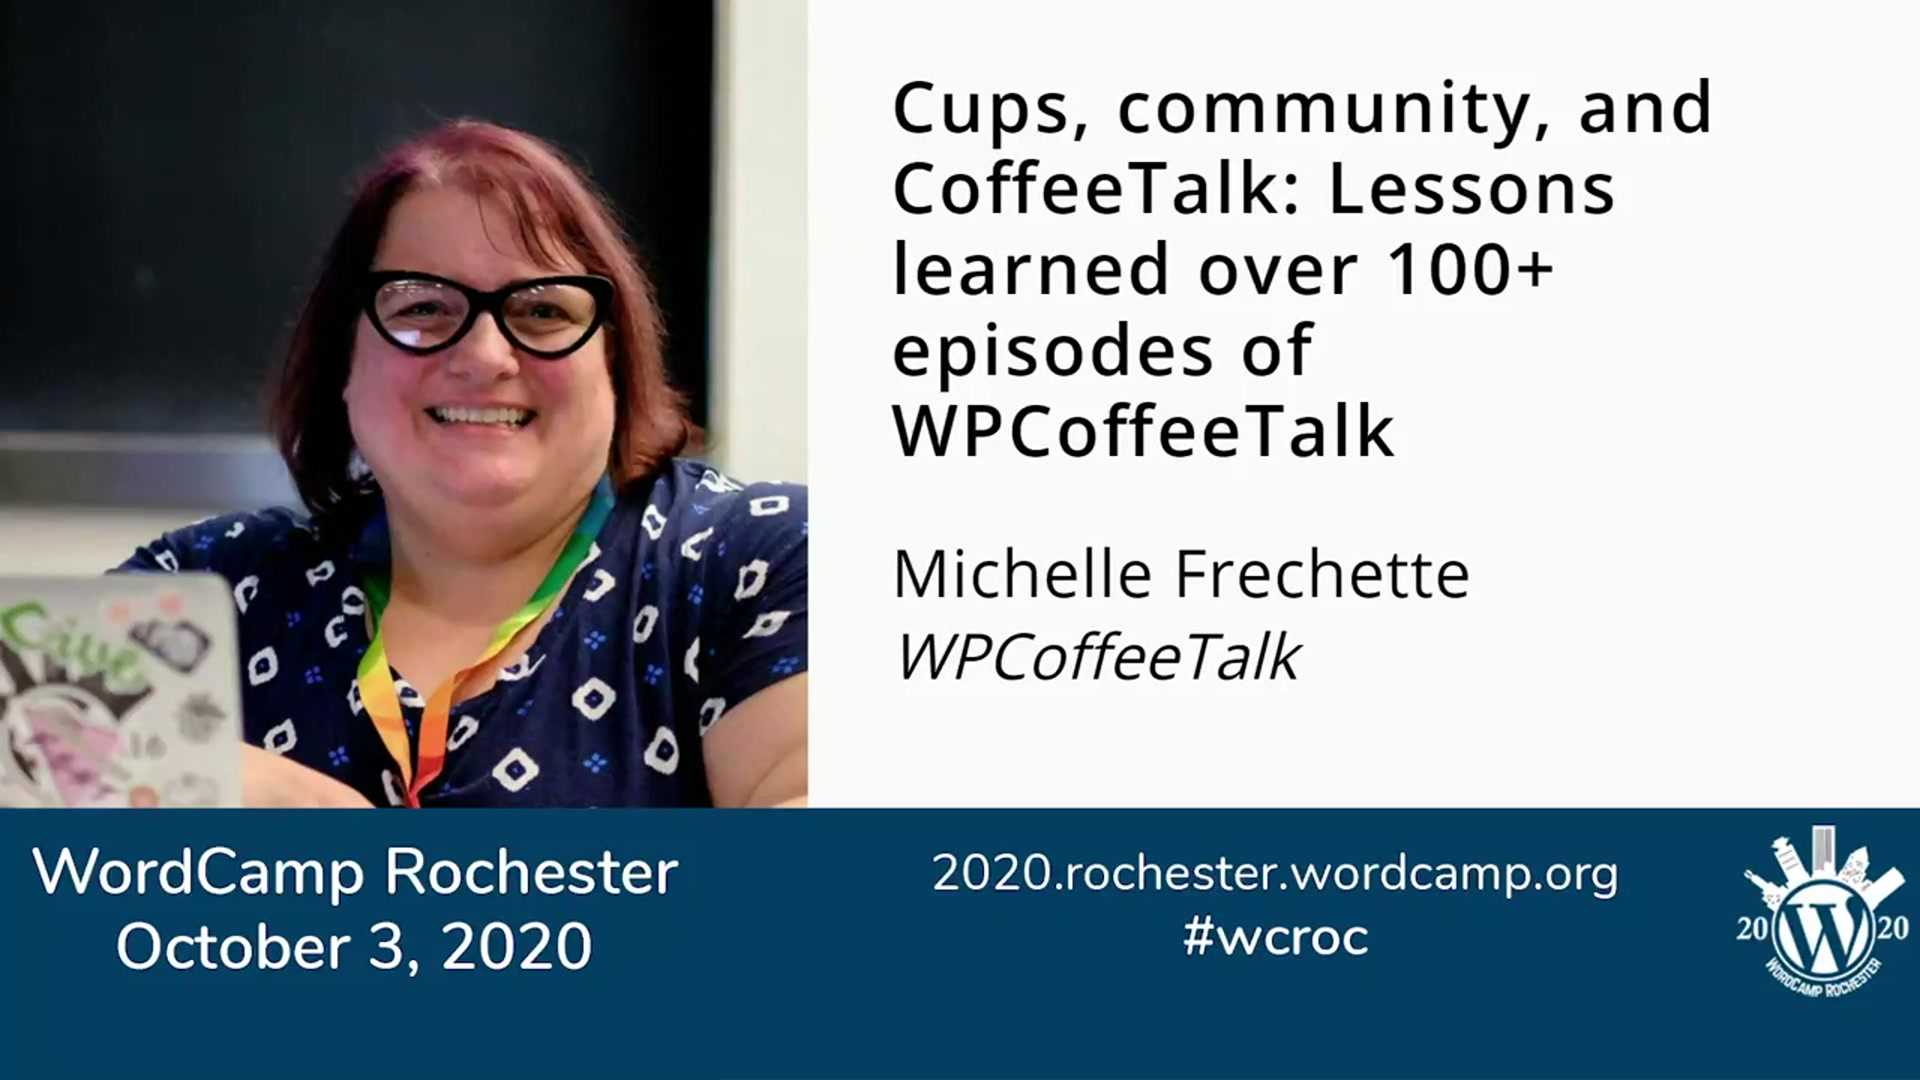 Michelle Frechette: Cups, Community, and CoffeeTalk: Lessons Learned Over 100+ Episodes of WPCoffeeTalk